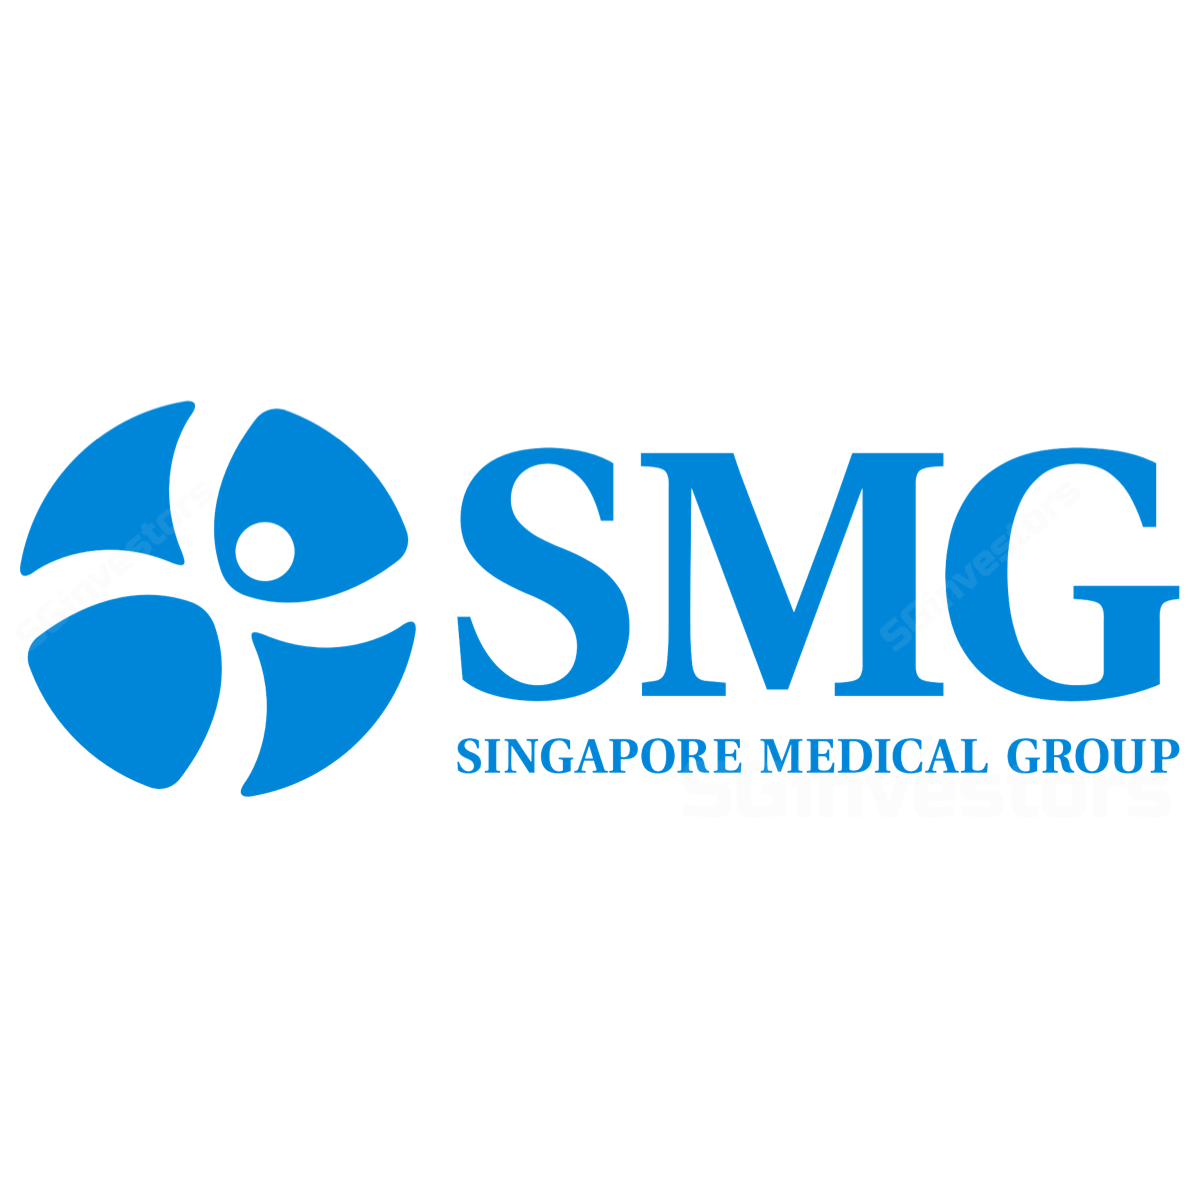 Singapore Medical Group - RHB Invest 2017-12-19: Driving Synergies Within A Larger Group